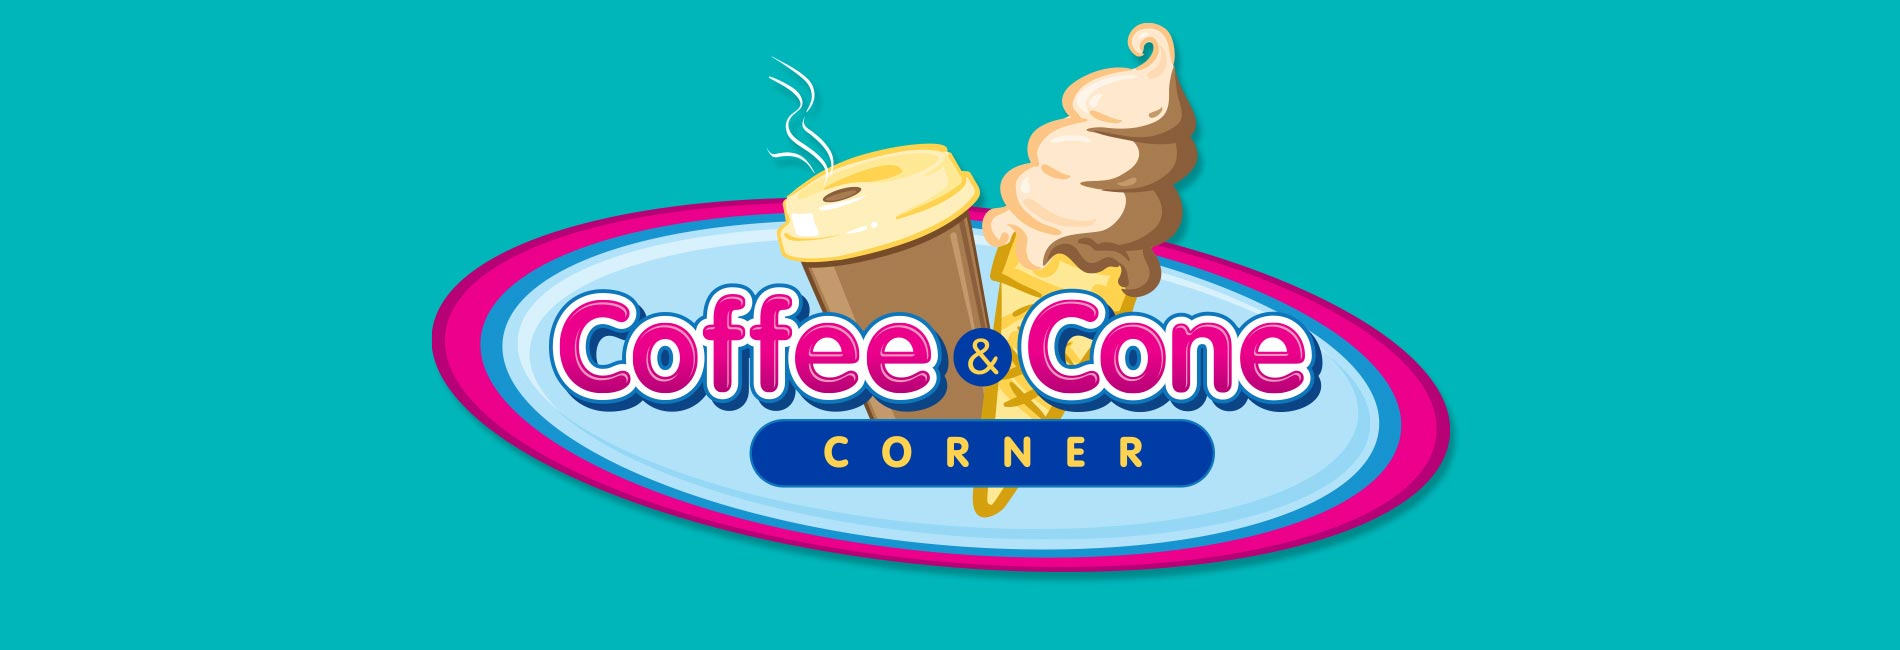 Coffee and Cone Corner at Sesame Place